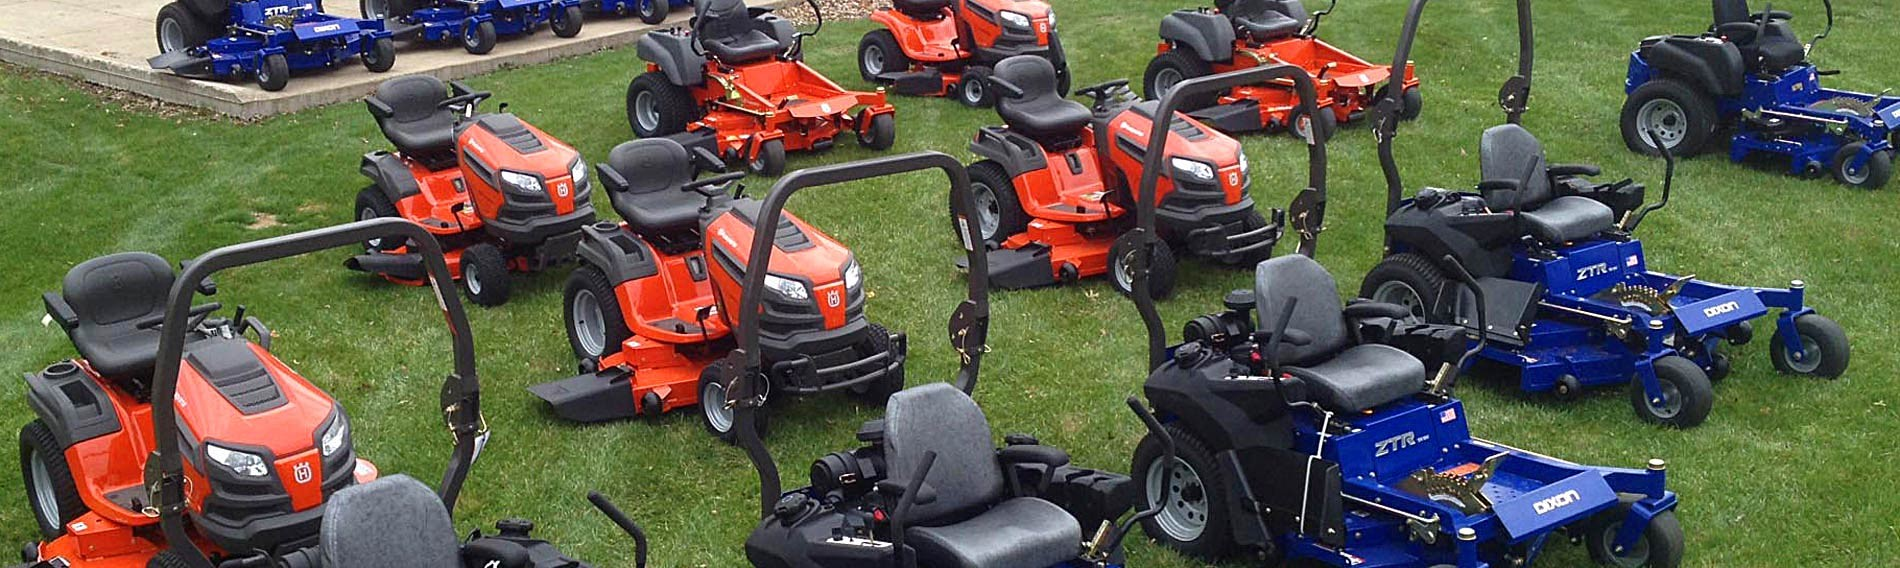 Mower-Shop-Equip-Homepage-slider